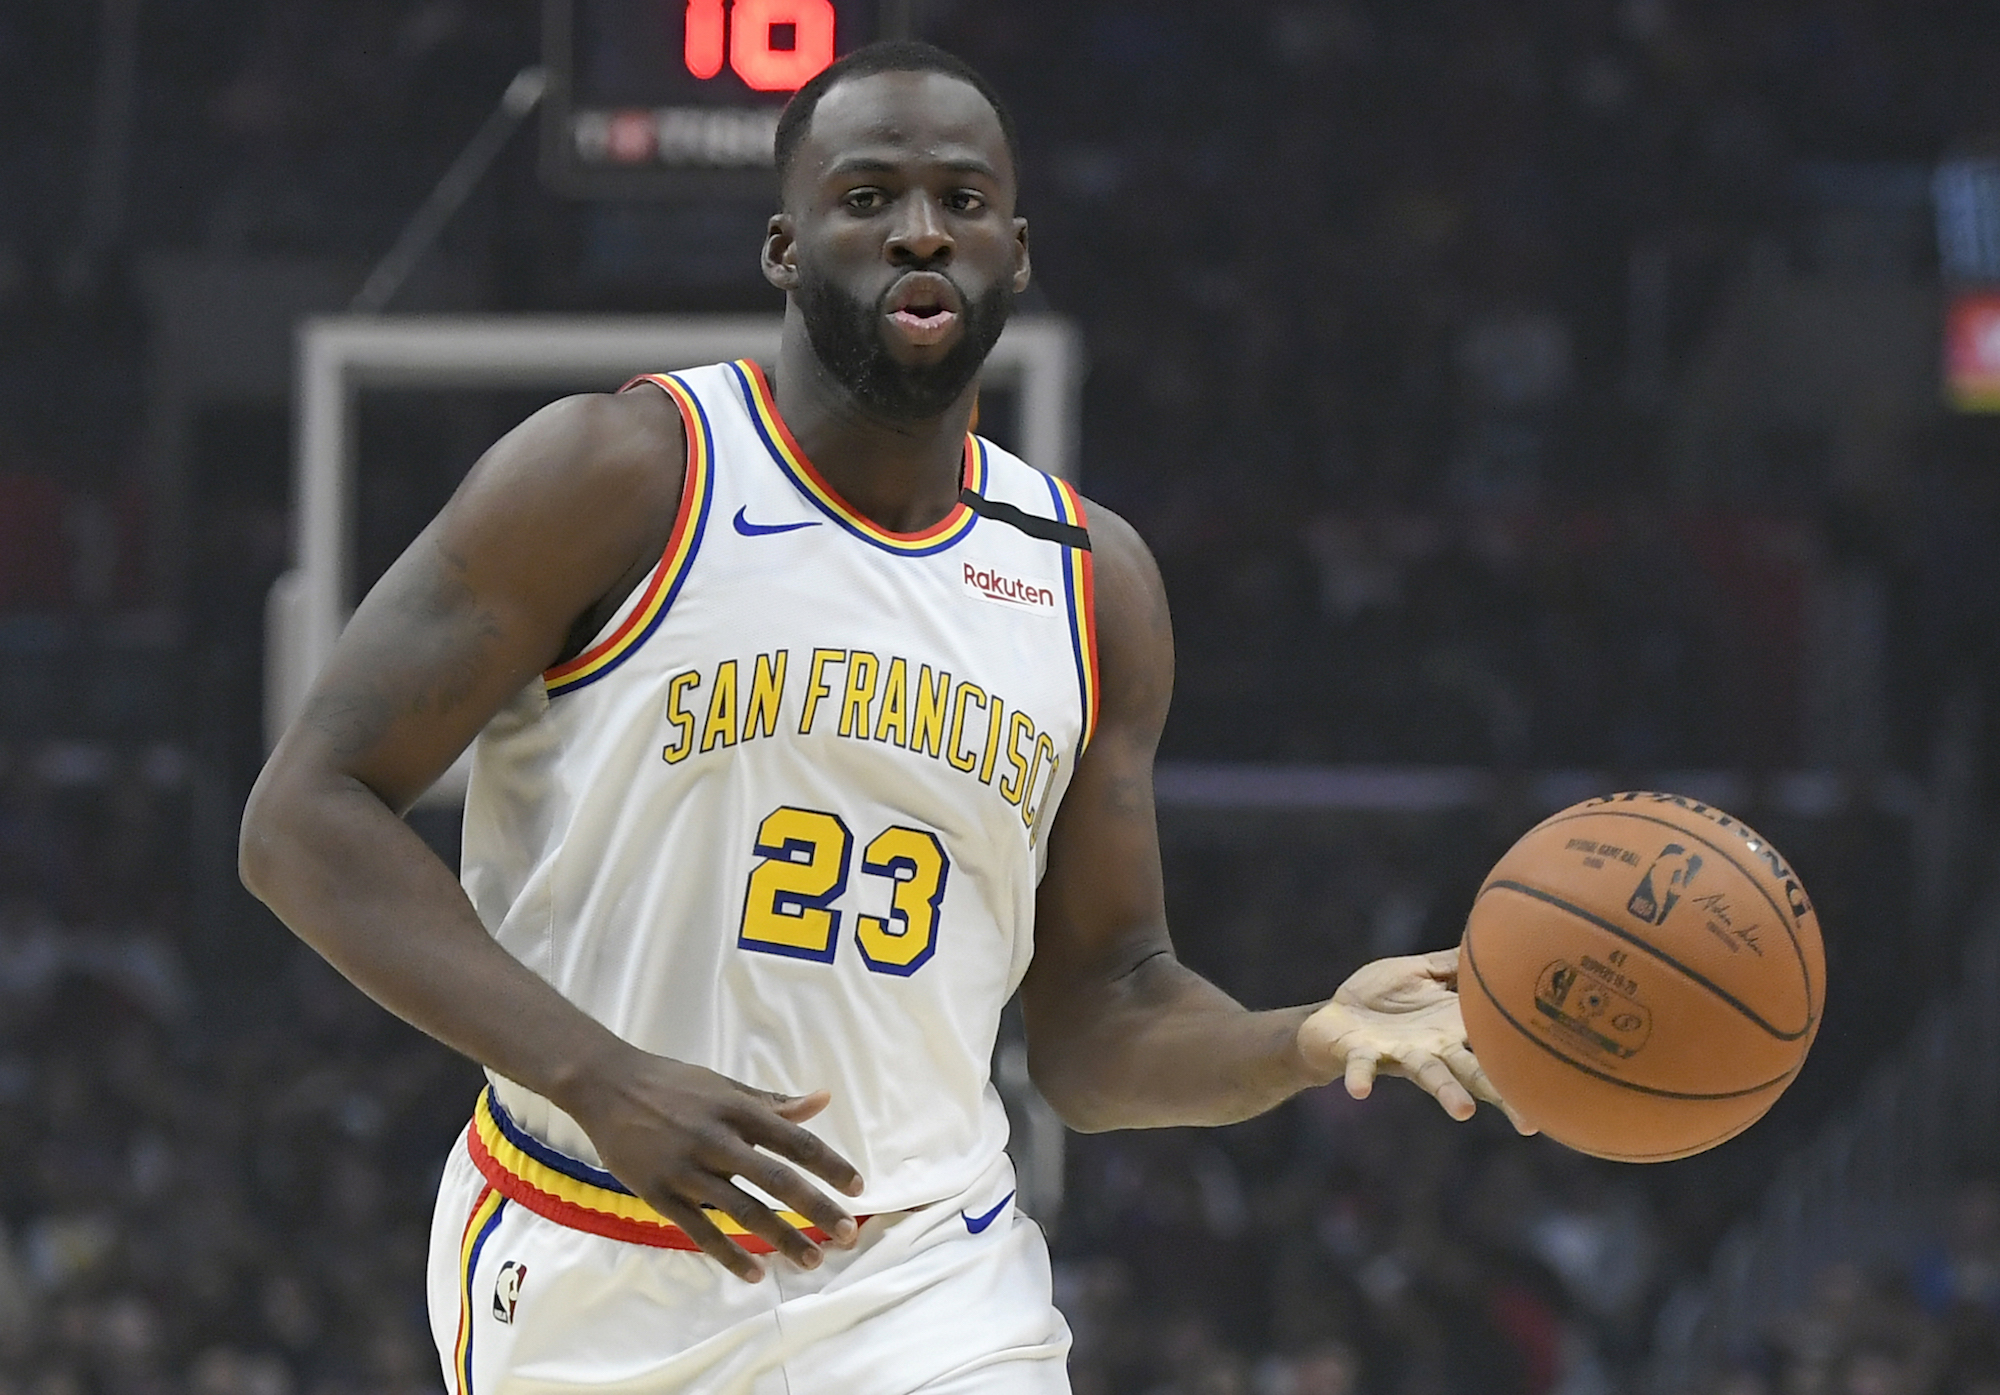 Draymond Green Didn't Vote in 2016, but He's Teaming Up With LeBron to Make Sure 2020 is a Different Story